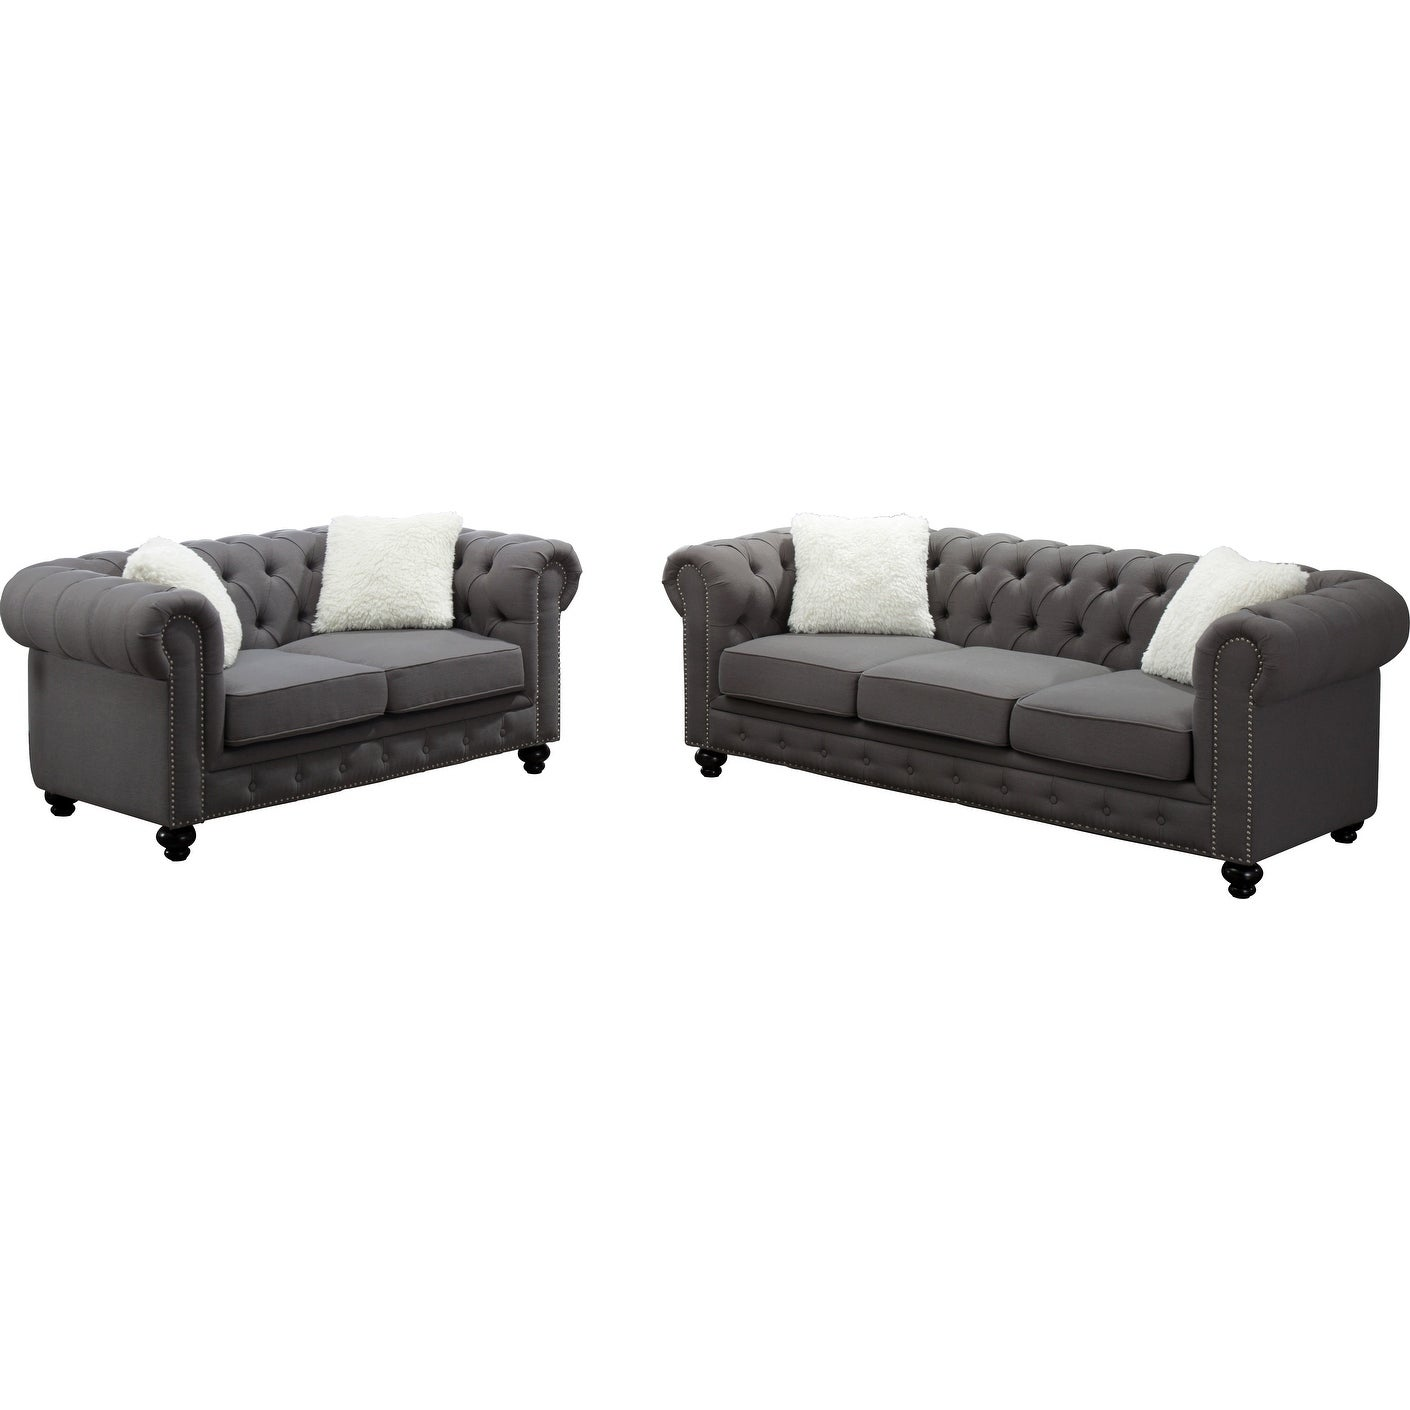 Shop best quality furniture grey chesterfield sofa and loveseat set with accent pillows free shipping today overstock com 20538624